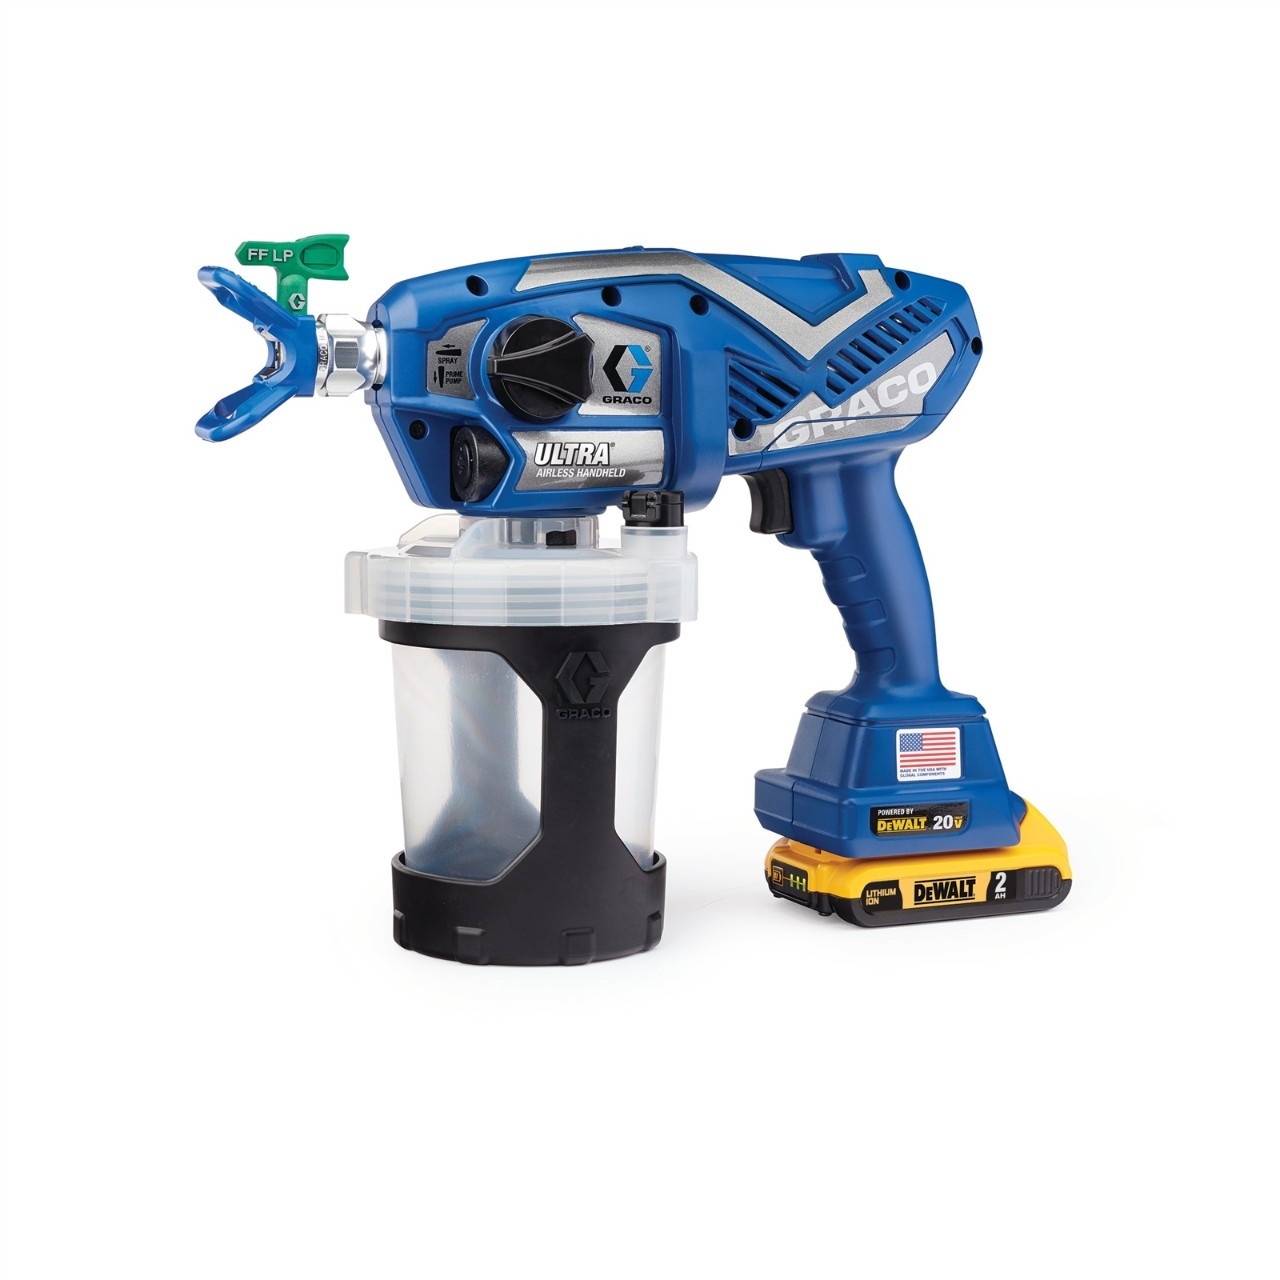 Graco-Ultra Cordless Handheld Airless Paint Sprayer